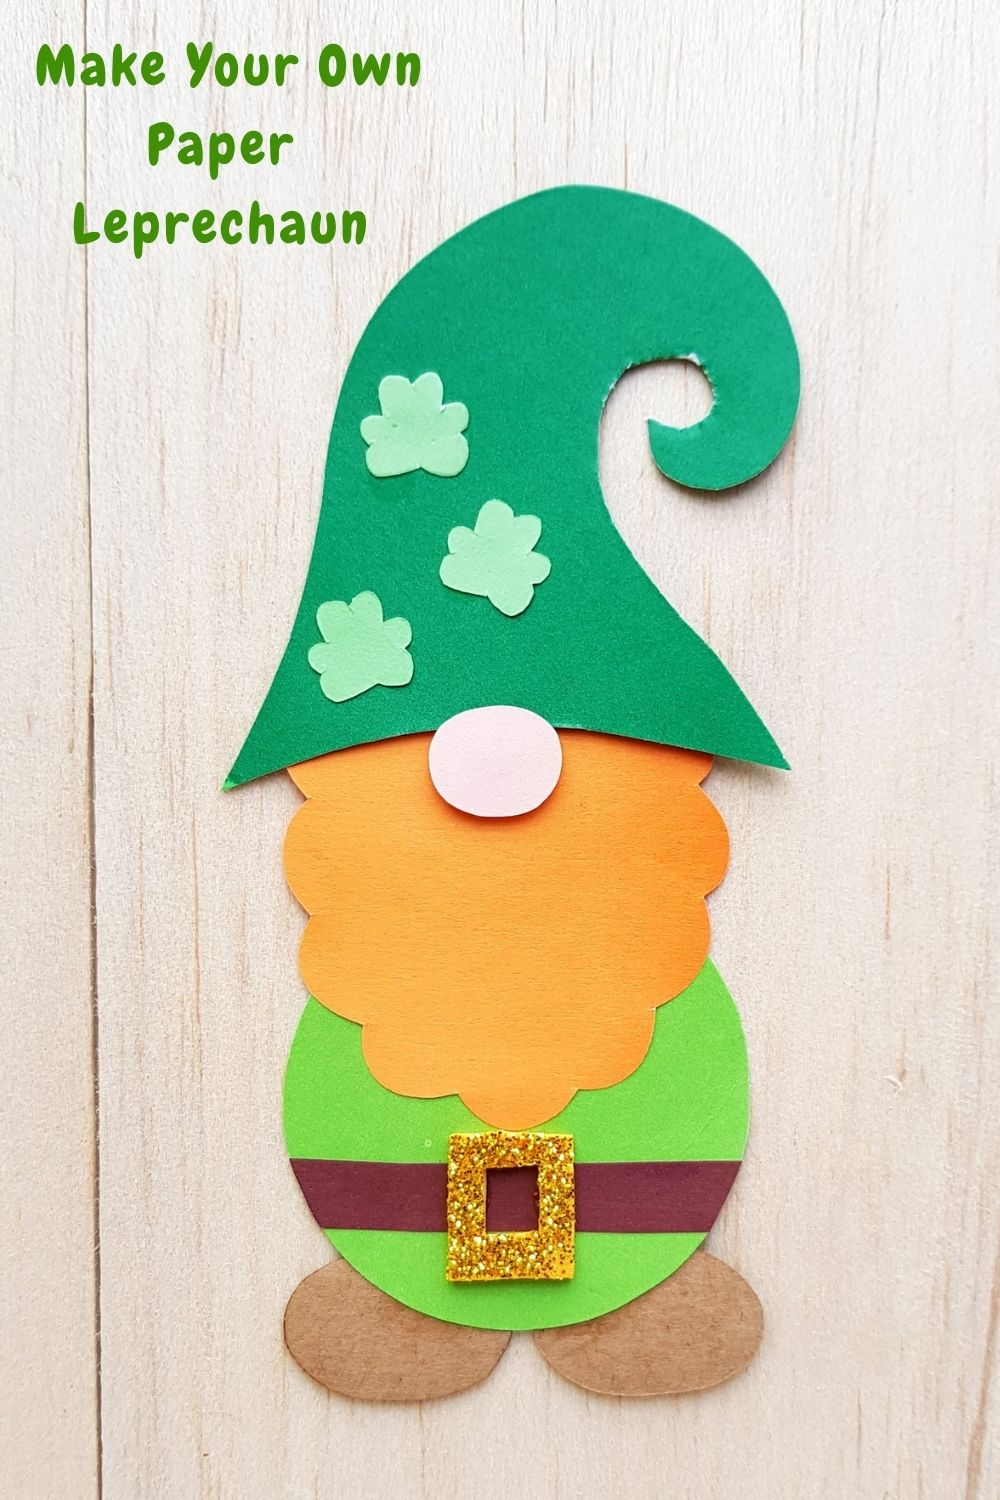 Paper leprechaun with shamrock hat with text overlay